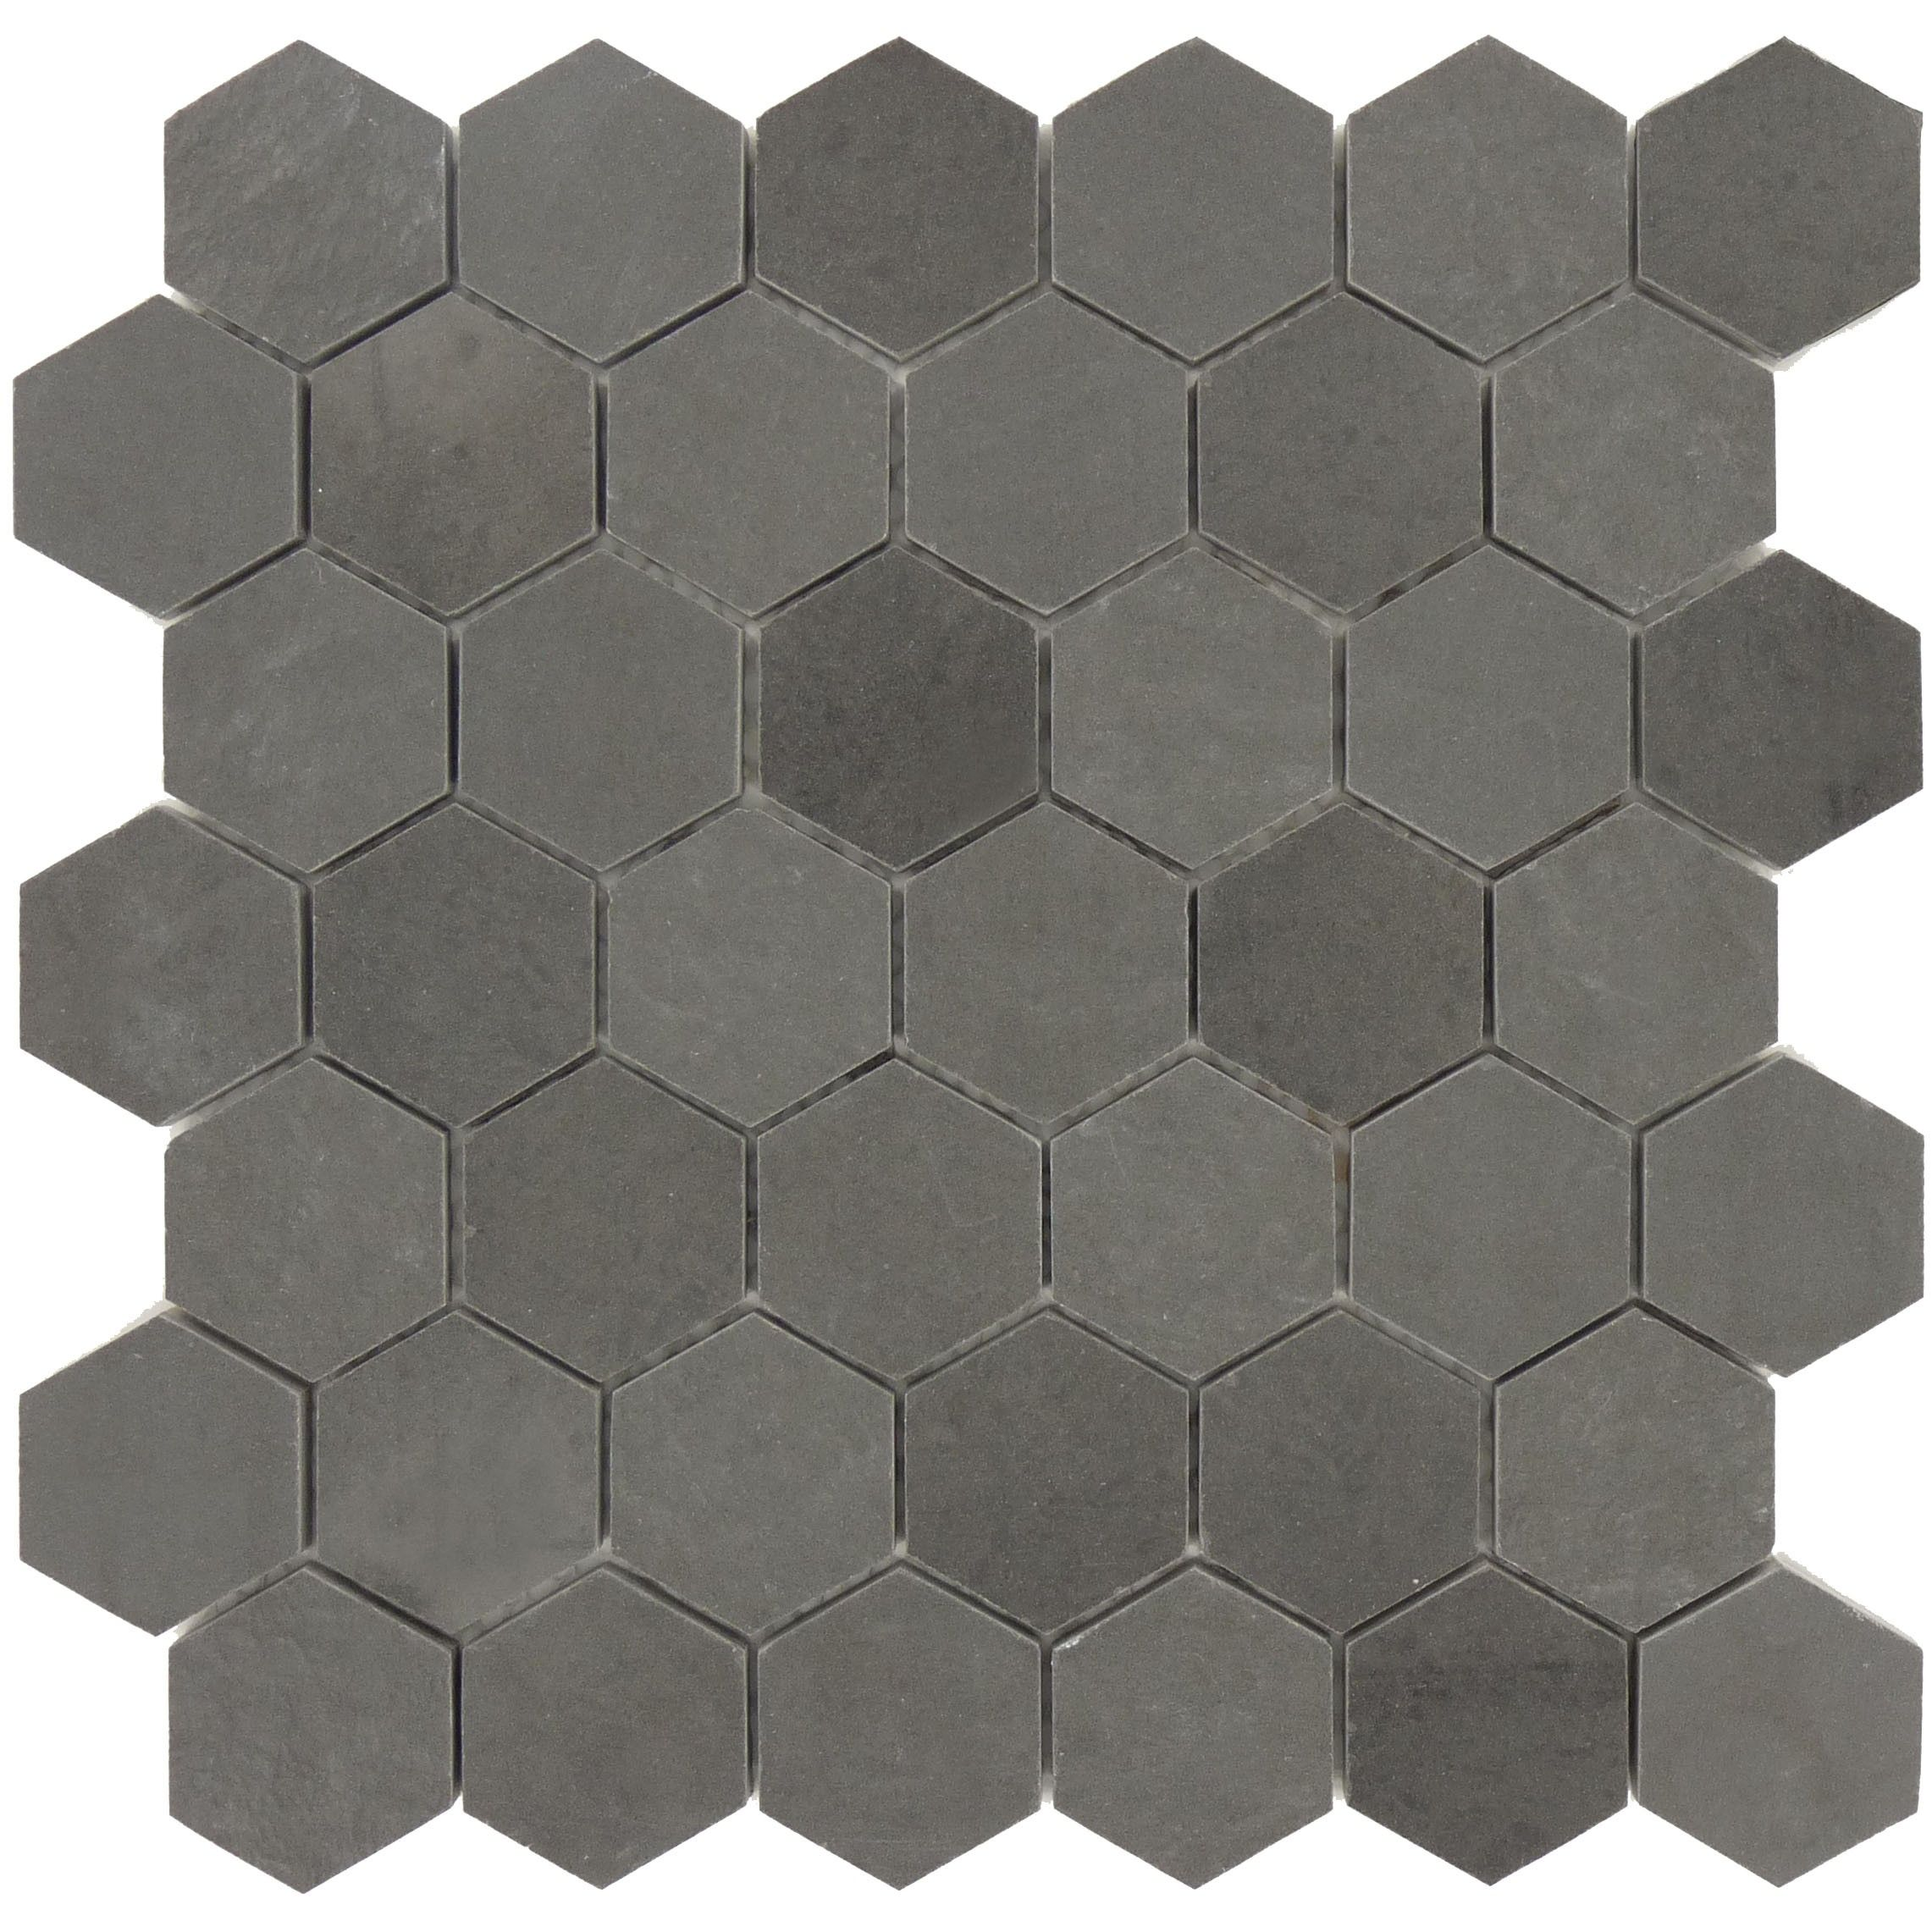 Grey Hexagon Tile Hexagon Porcelain Tile Glass Mosaic Tile Backsplash Tiles Glass Mosaic Tiles